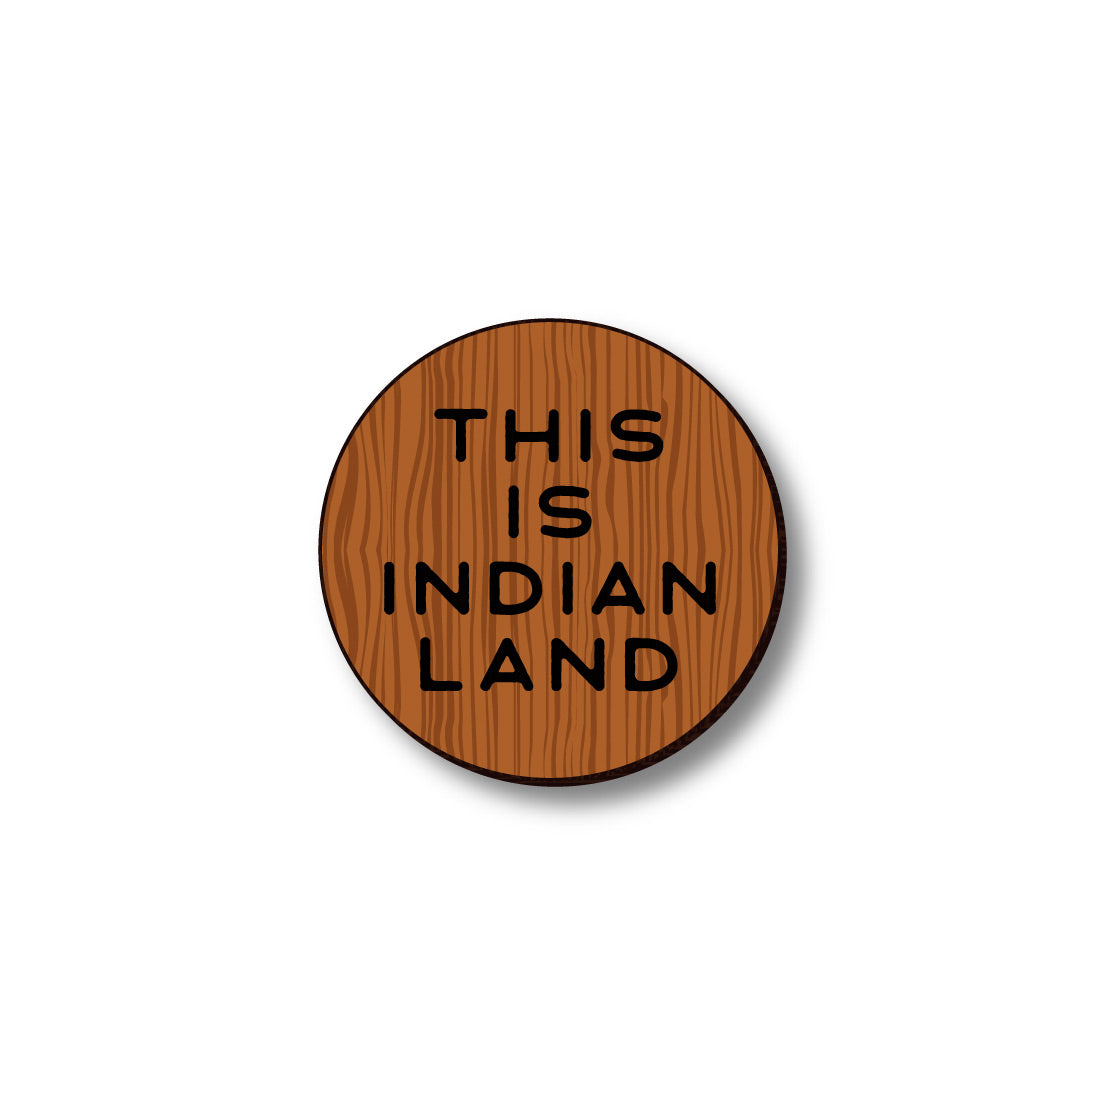 David Bernie Shop Laser Cut Cherry Wood Pin This is Indian Land